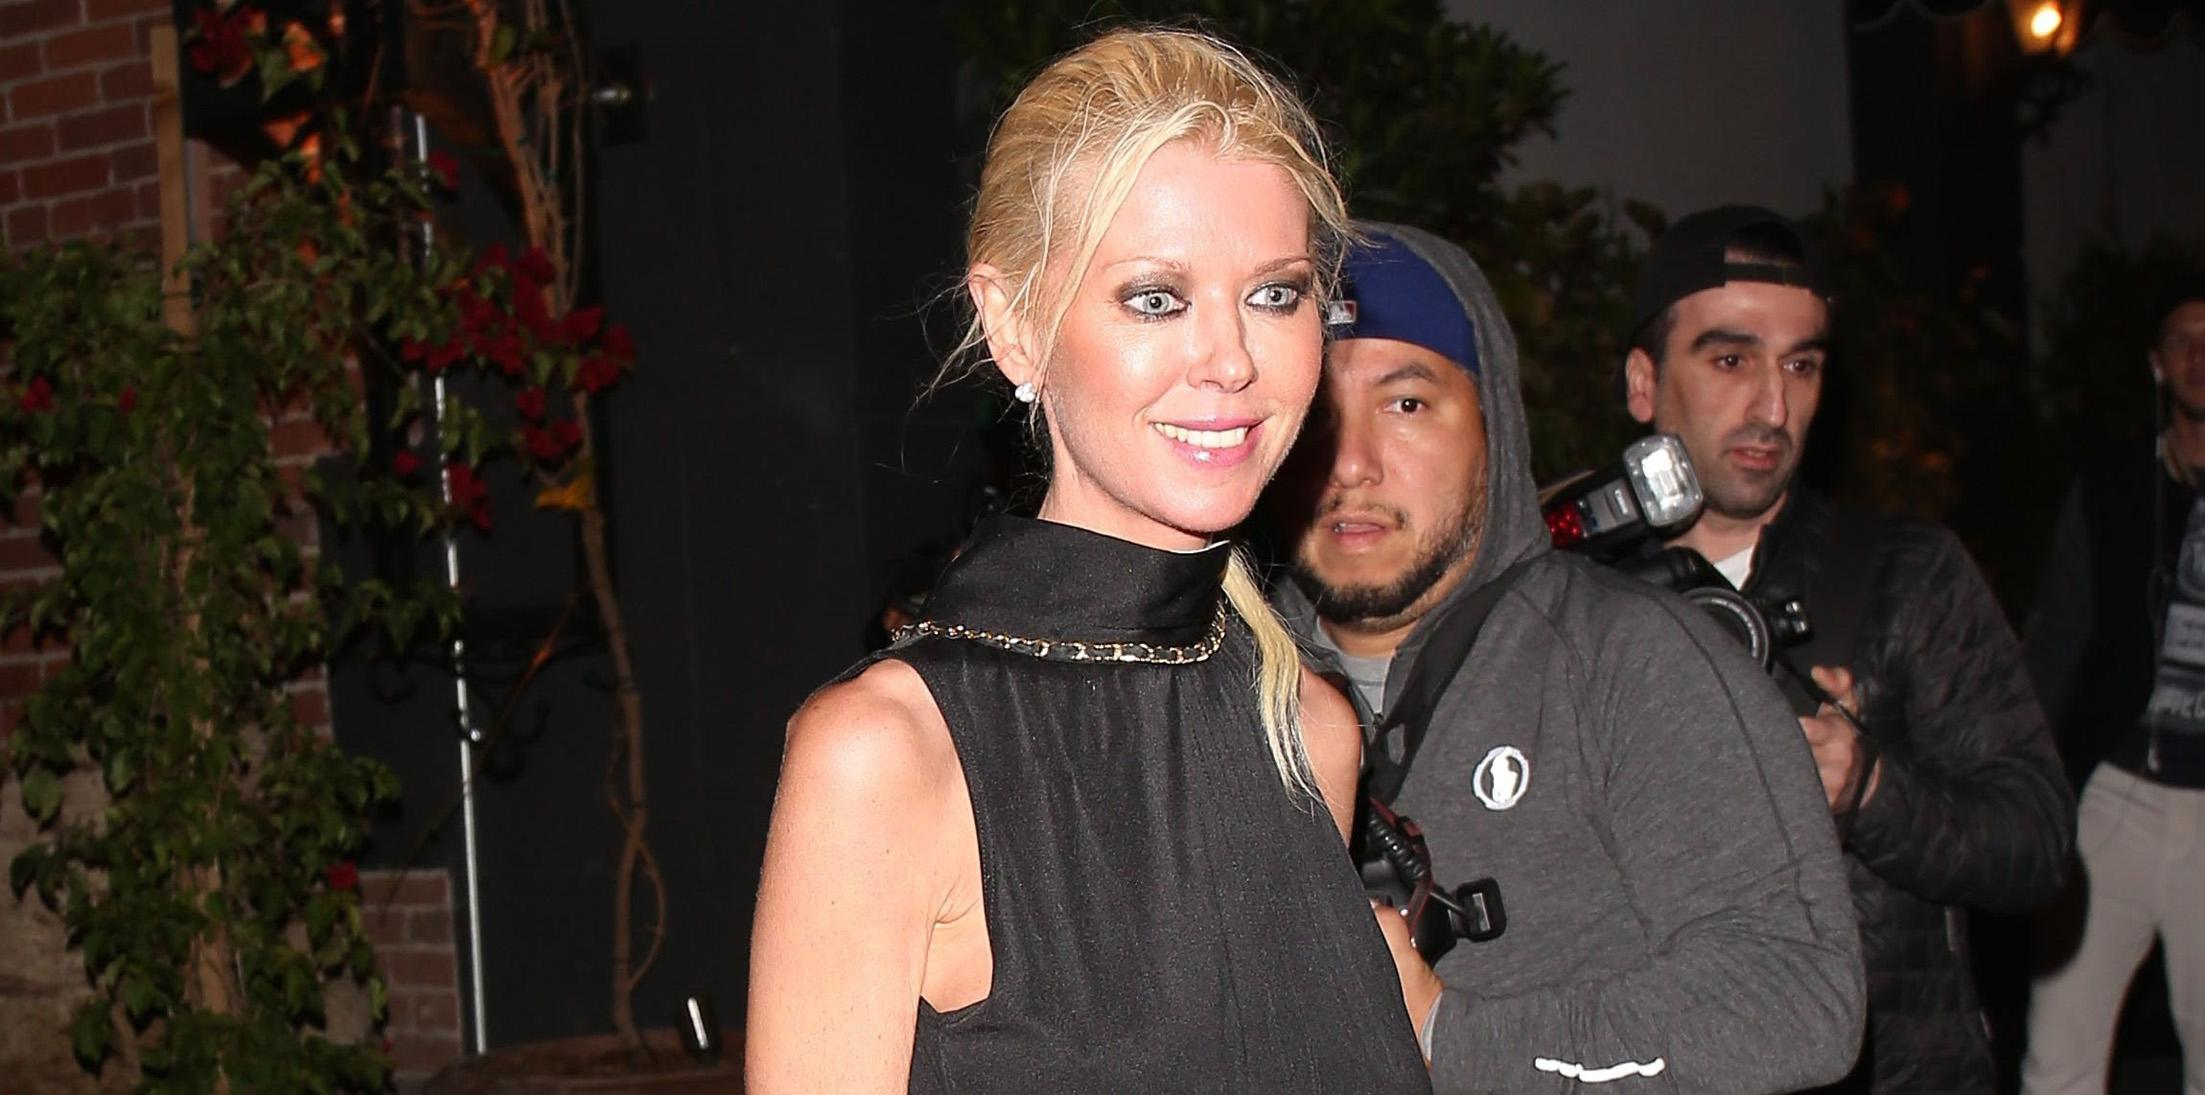 Tara Reid looks a little thin during a night out